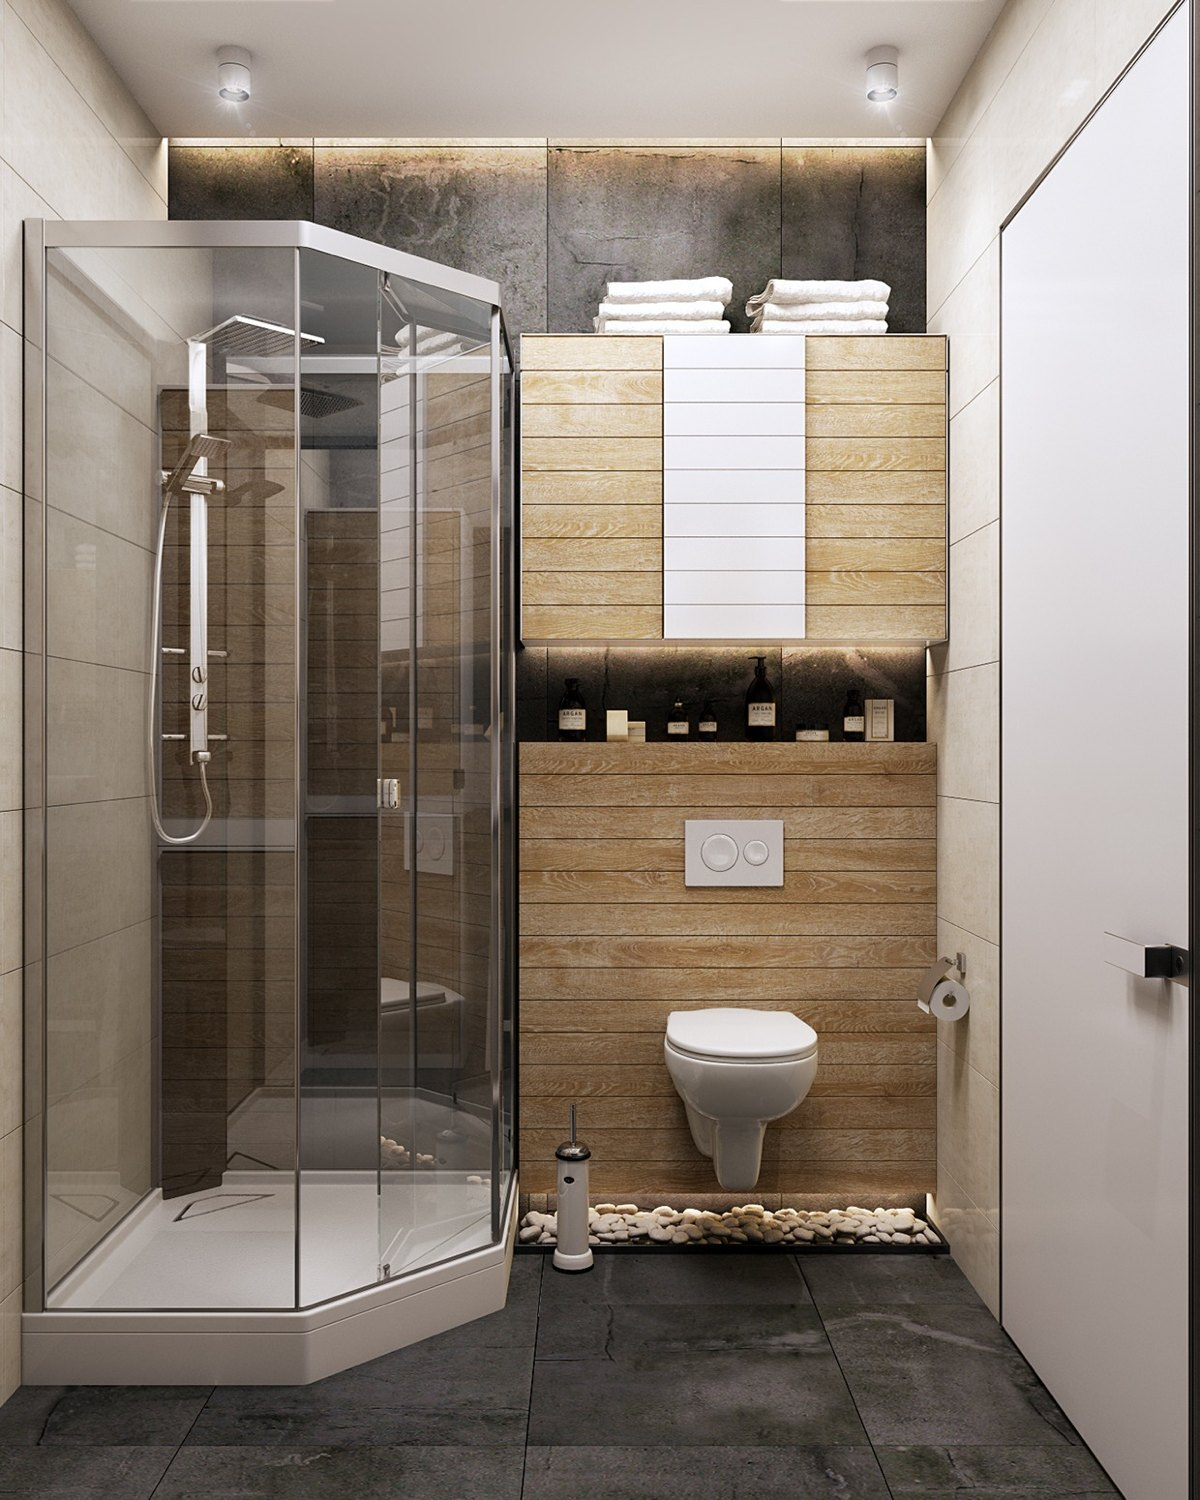 Chic Modern  Eclectic Spaces - Eclectic bathroom designs